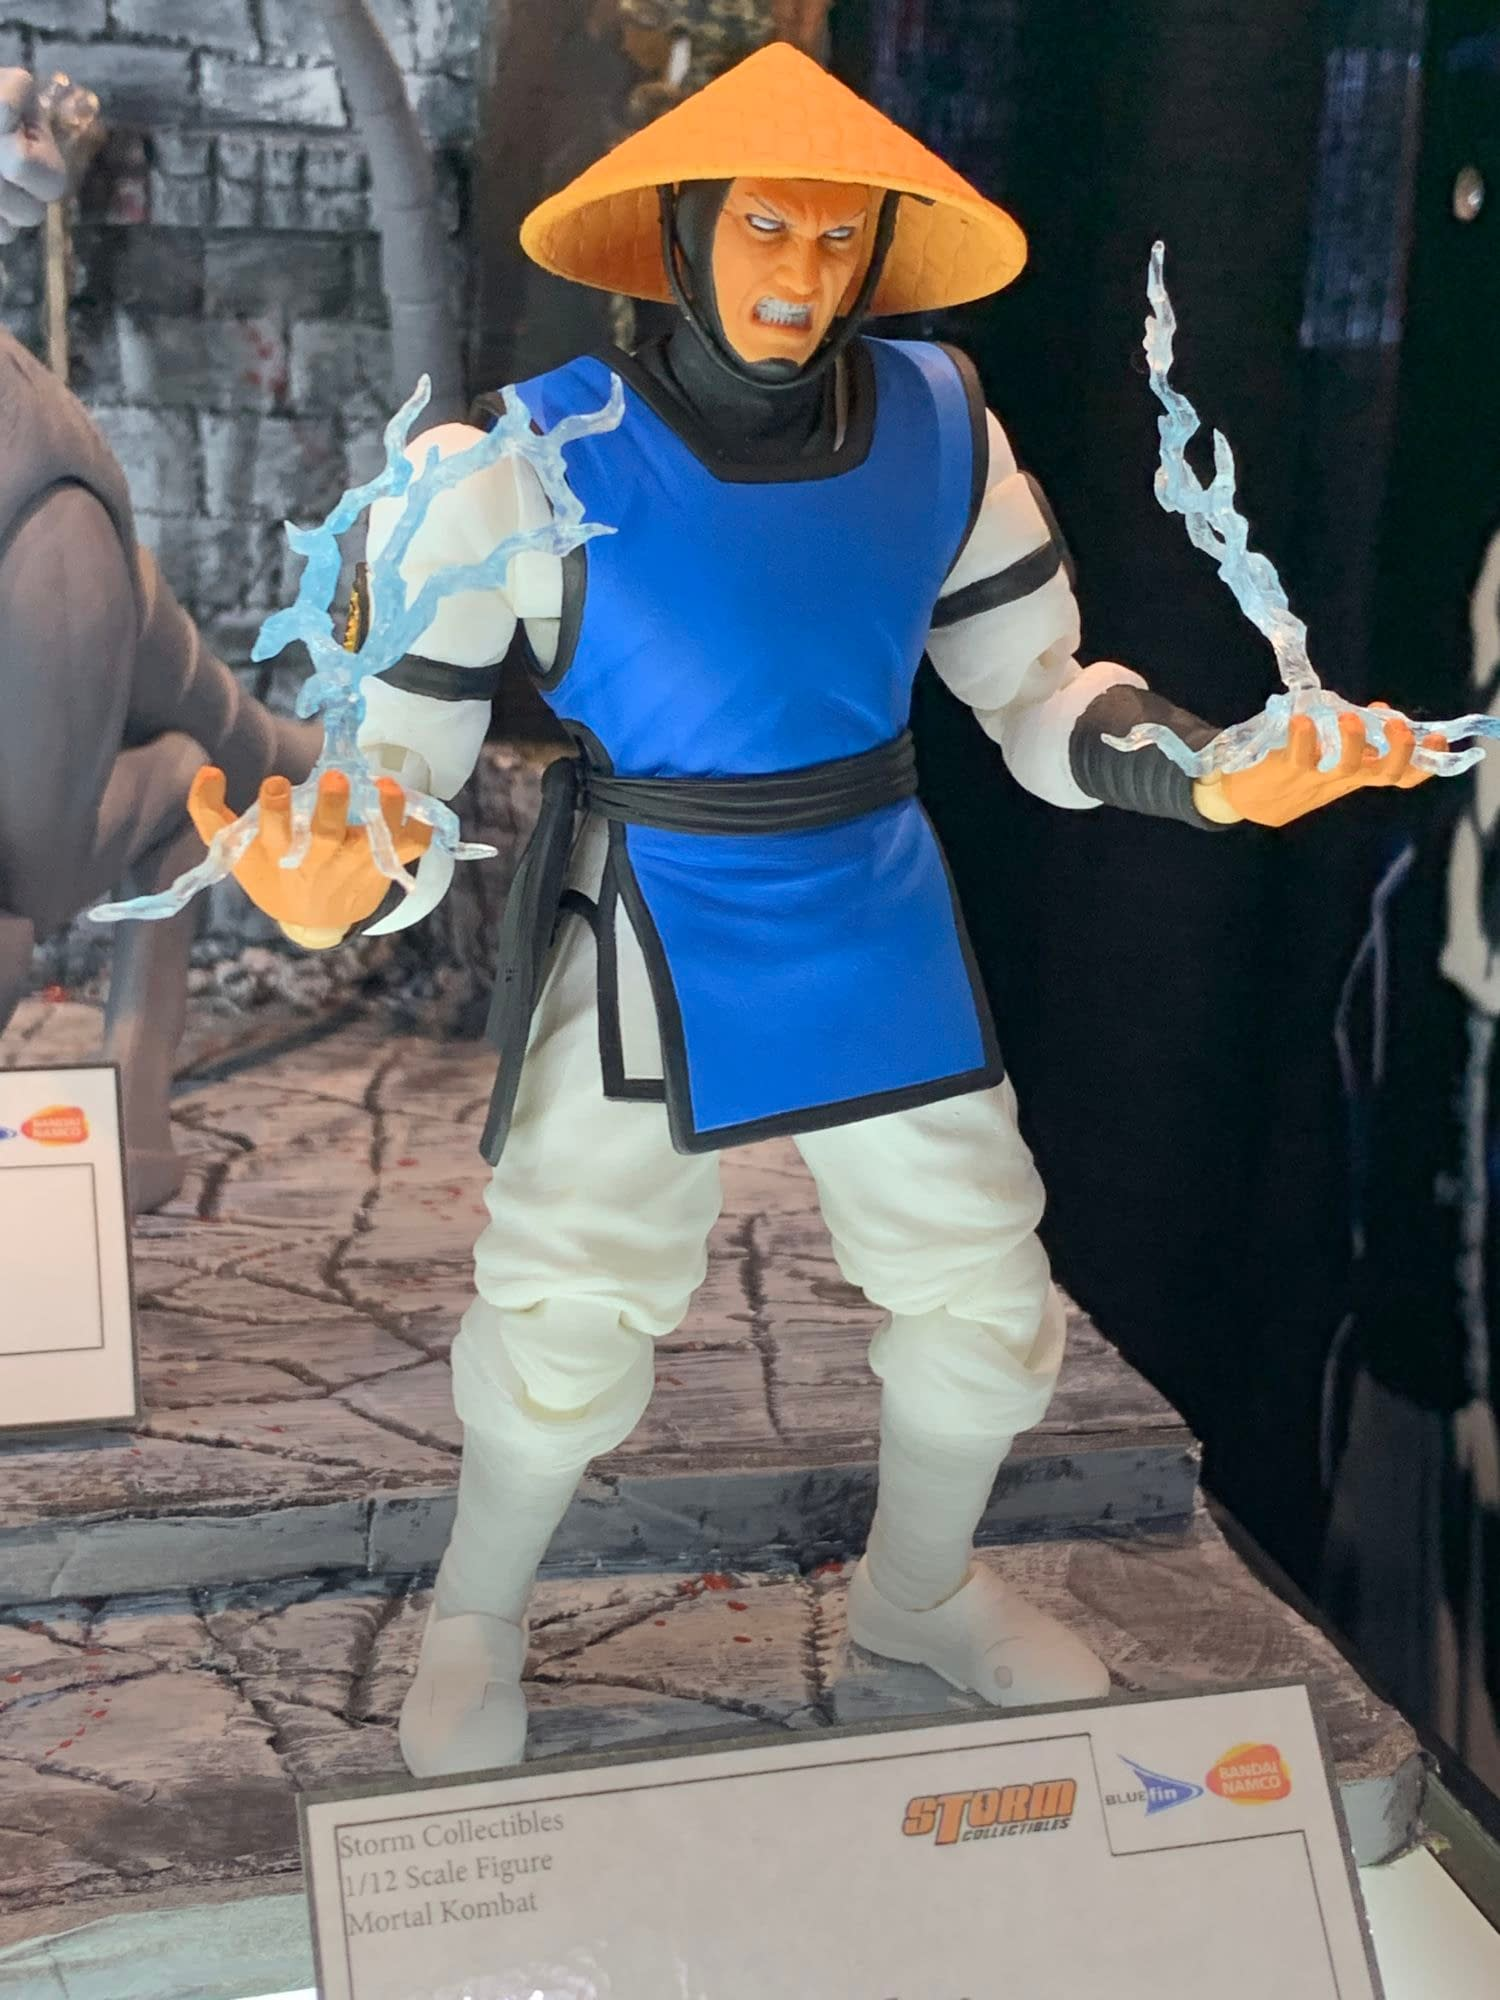 New York Toy Fair: 15 Photos from Storm Collectibles Booth